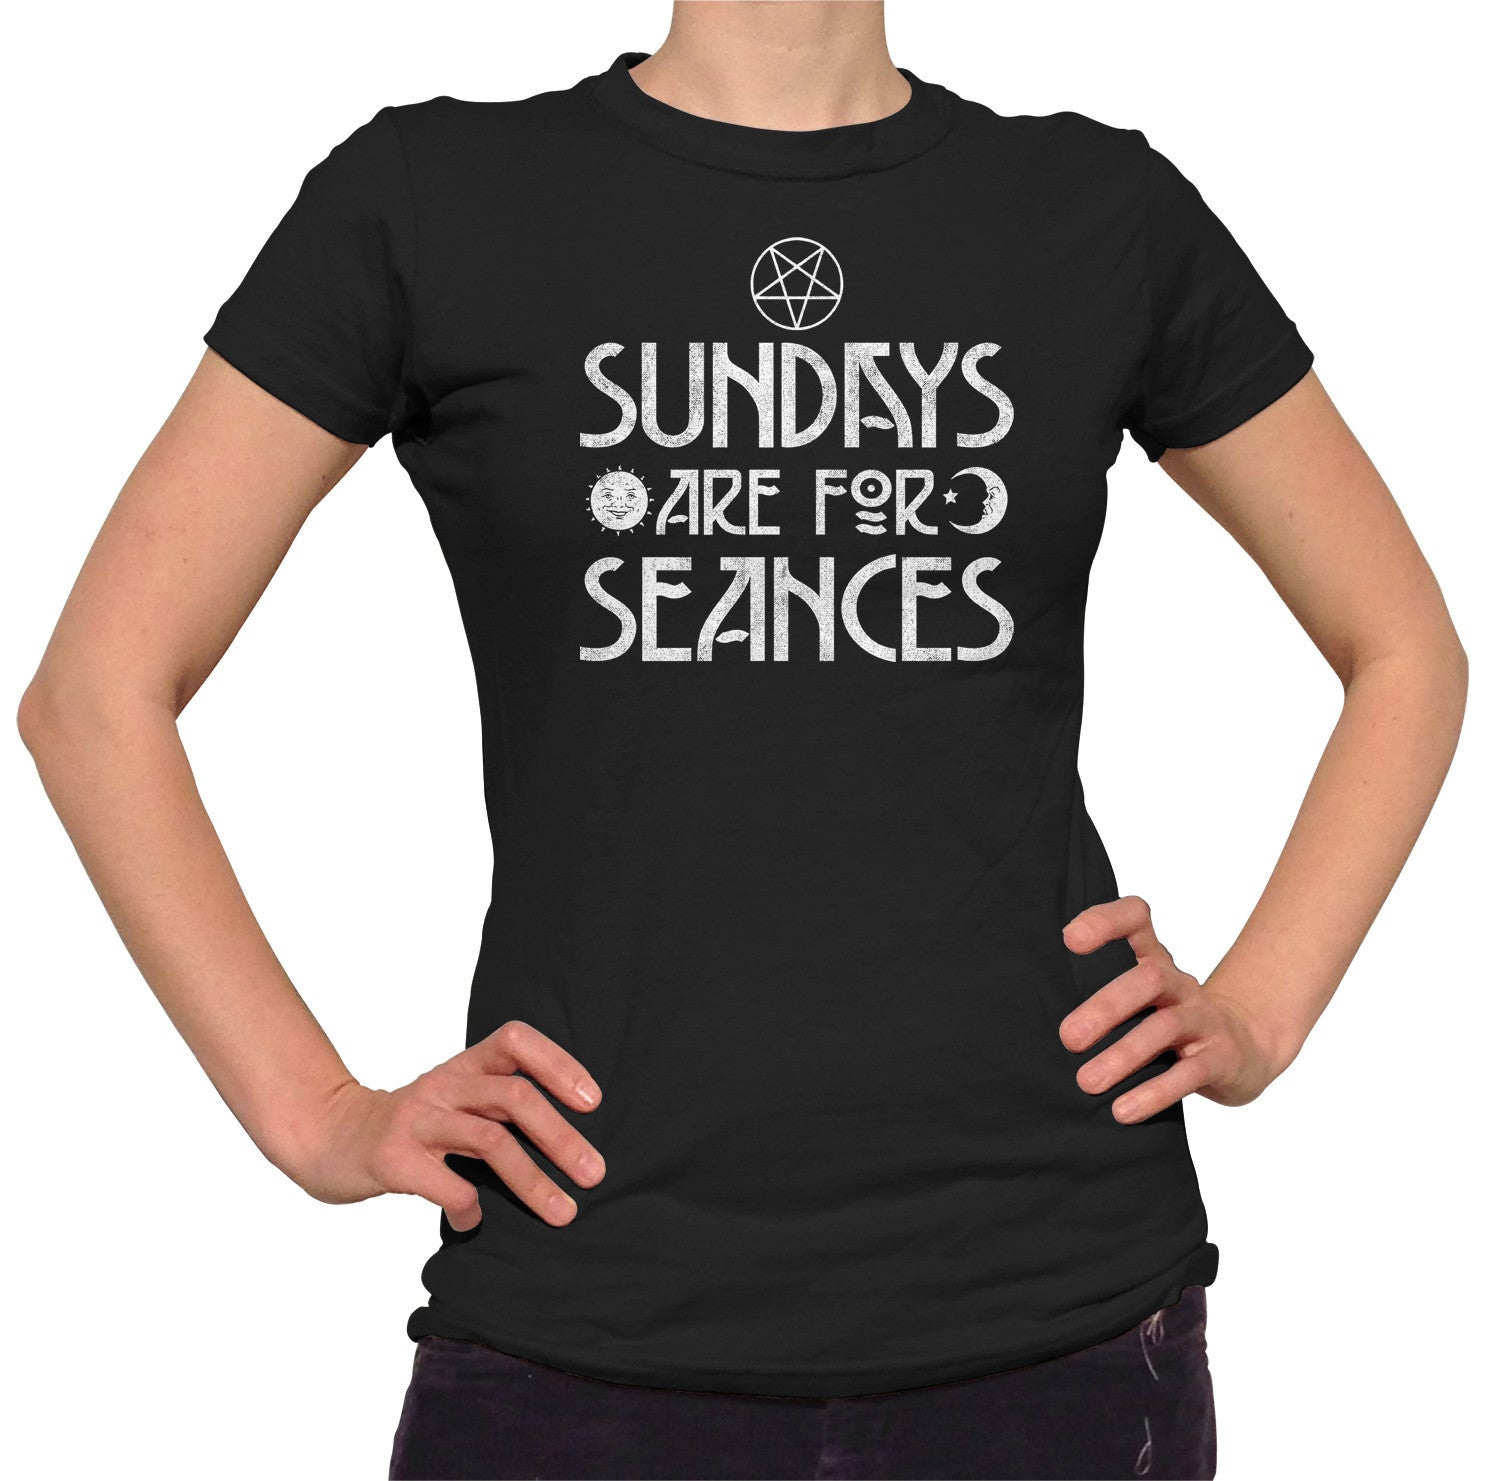 Women's Sundays are for Seances T-Shirt